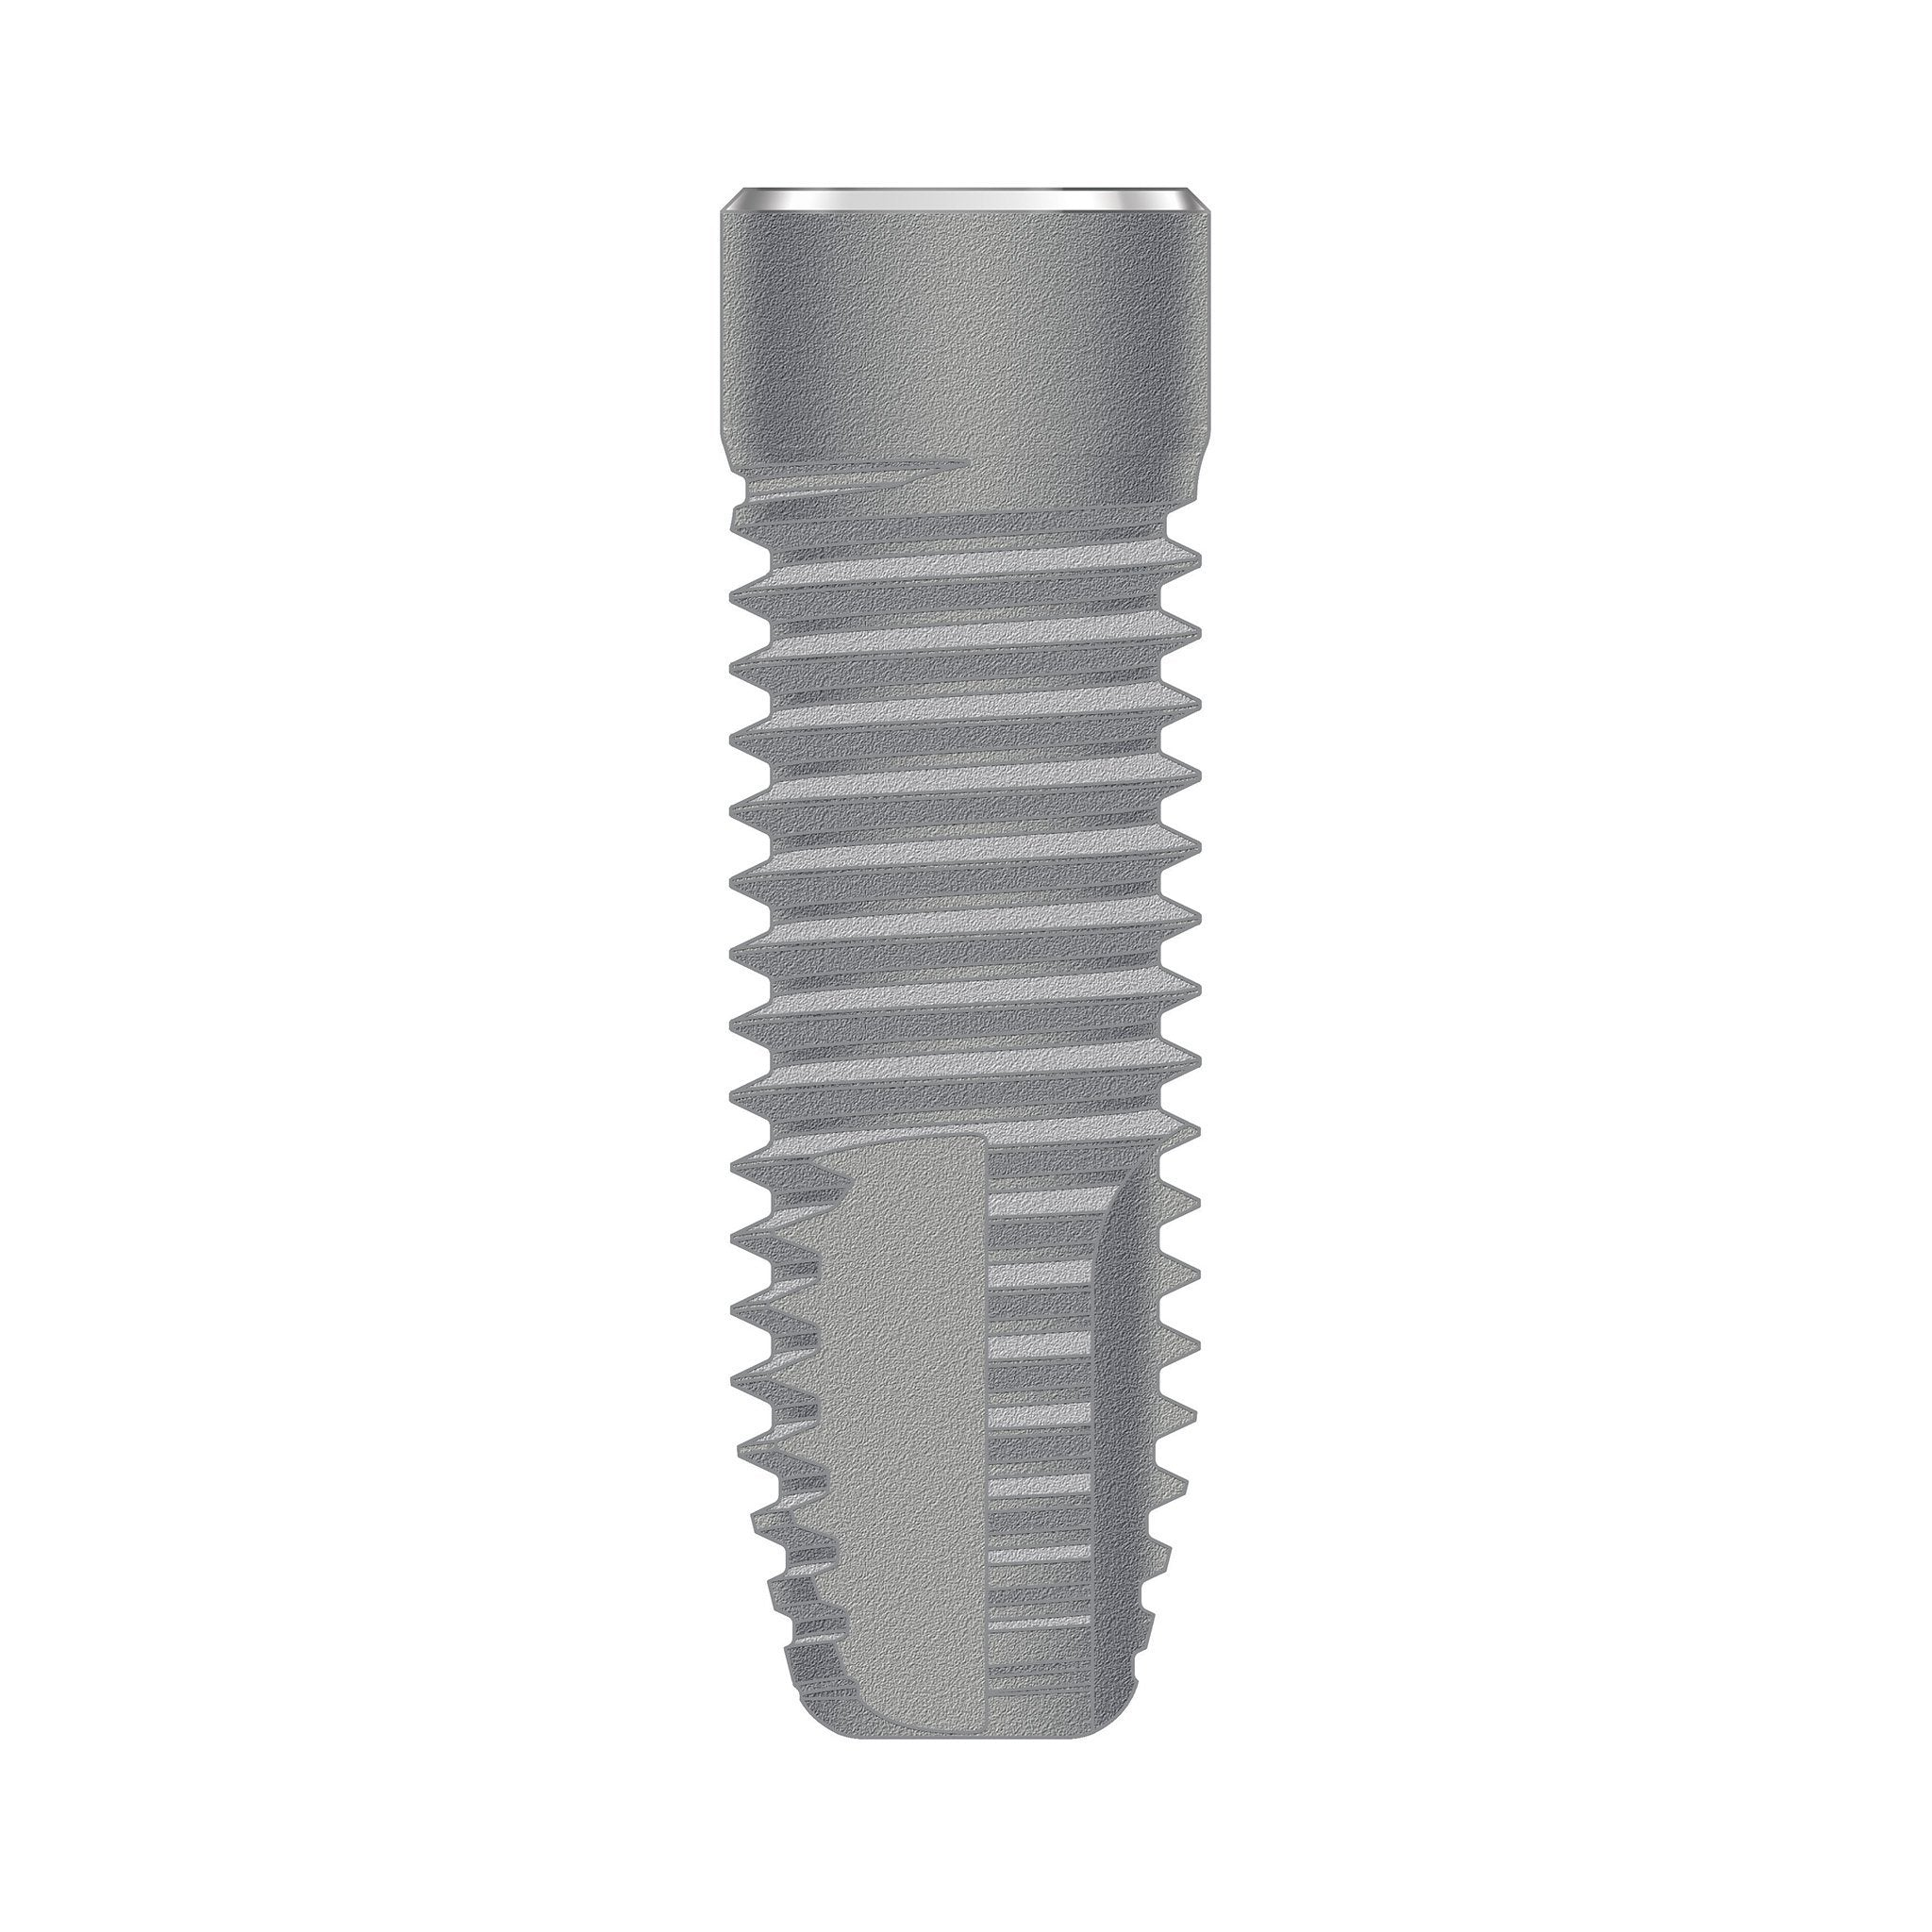 PrimaConnex® Straight Implant RD Ø 5.0 x 11.5mm | K1